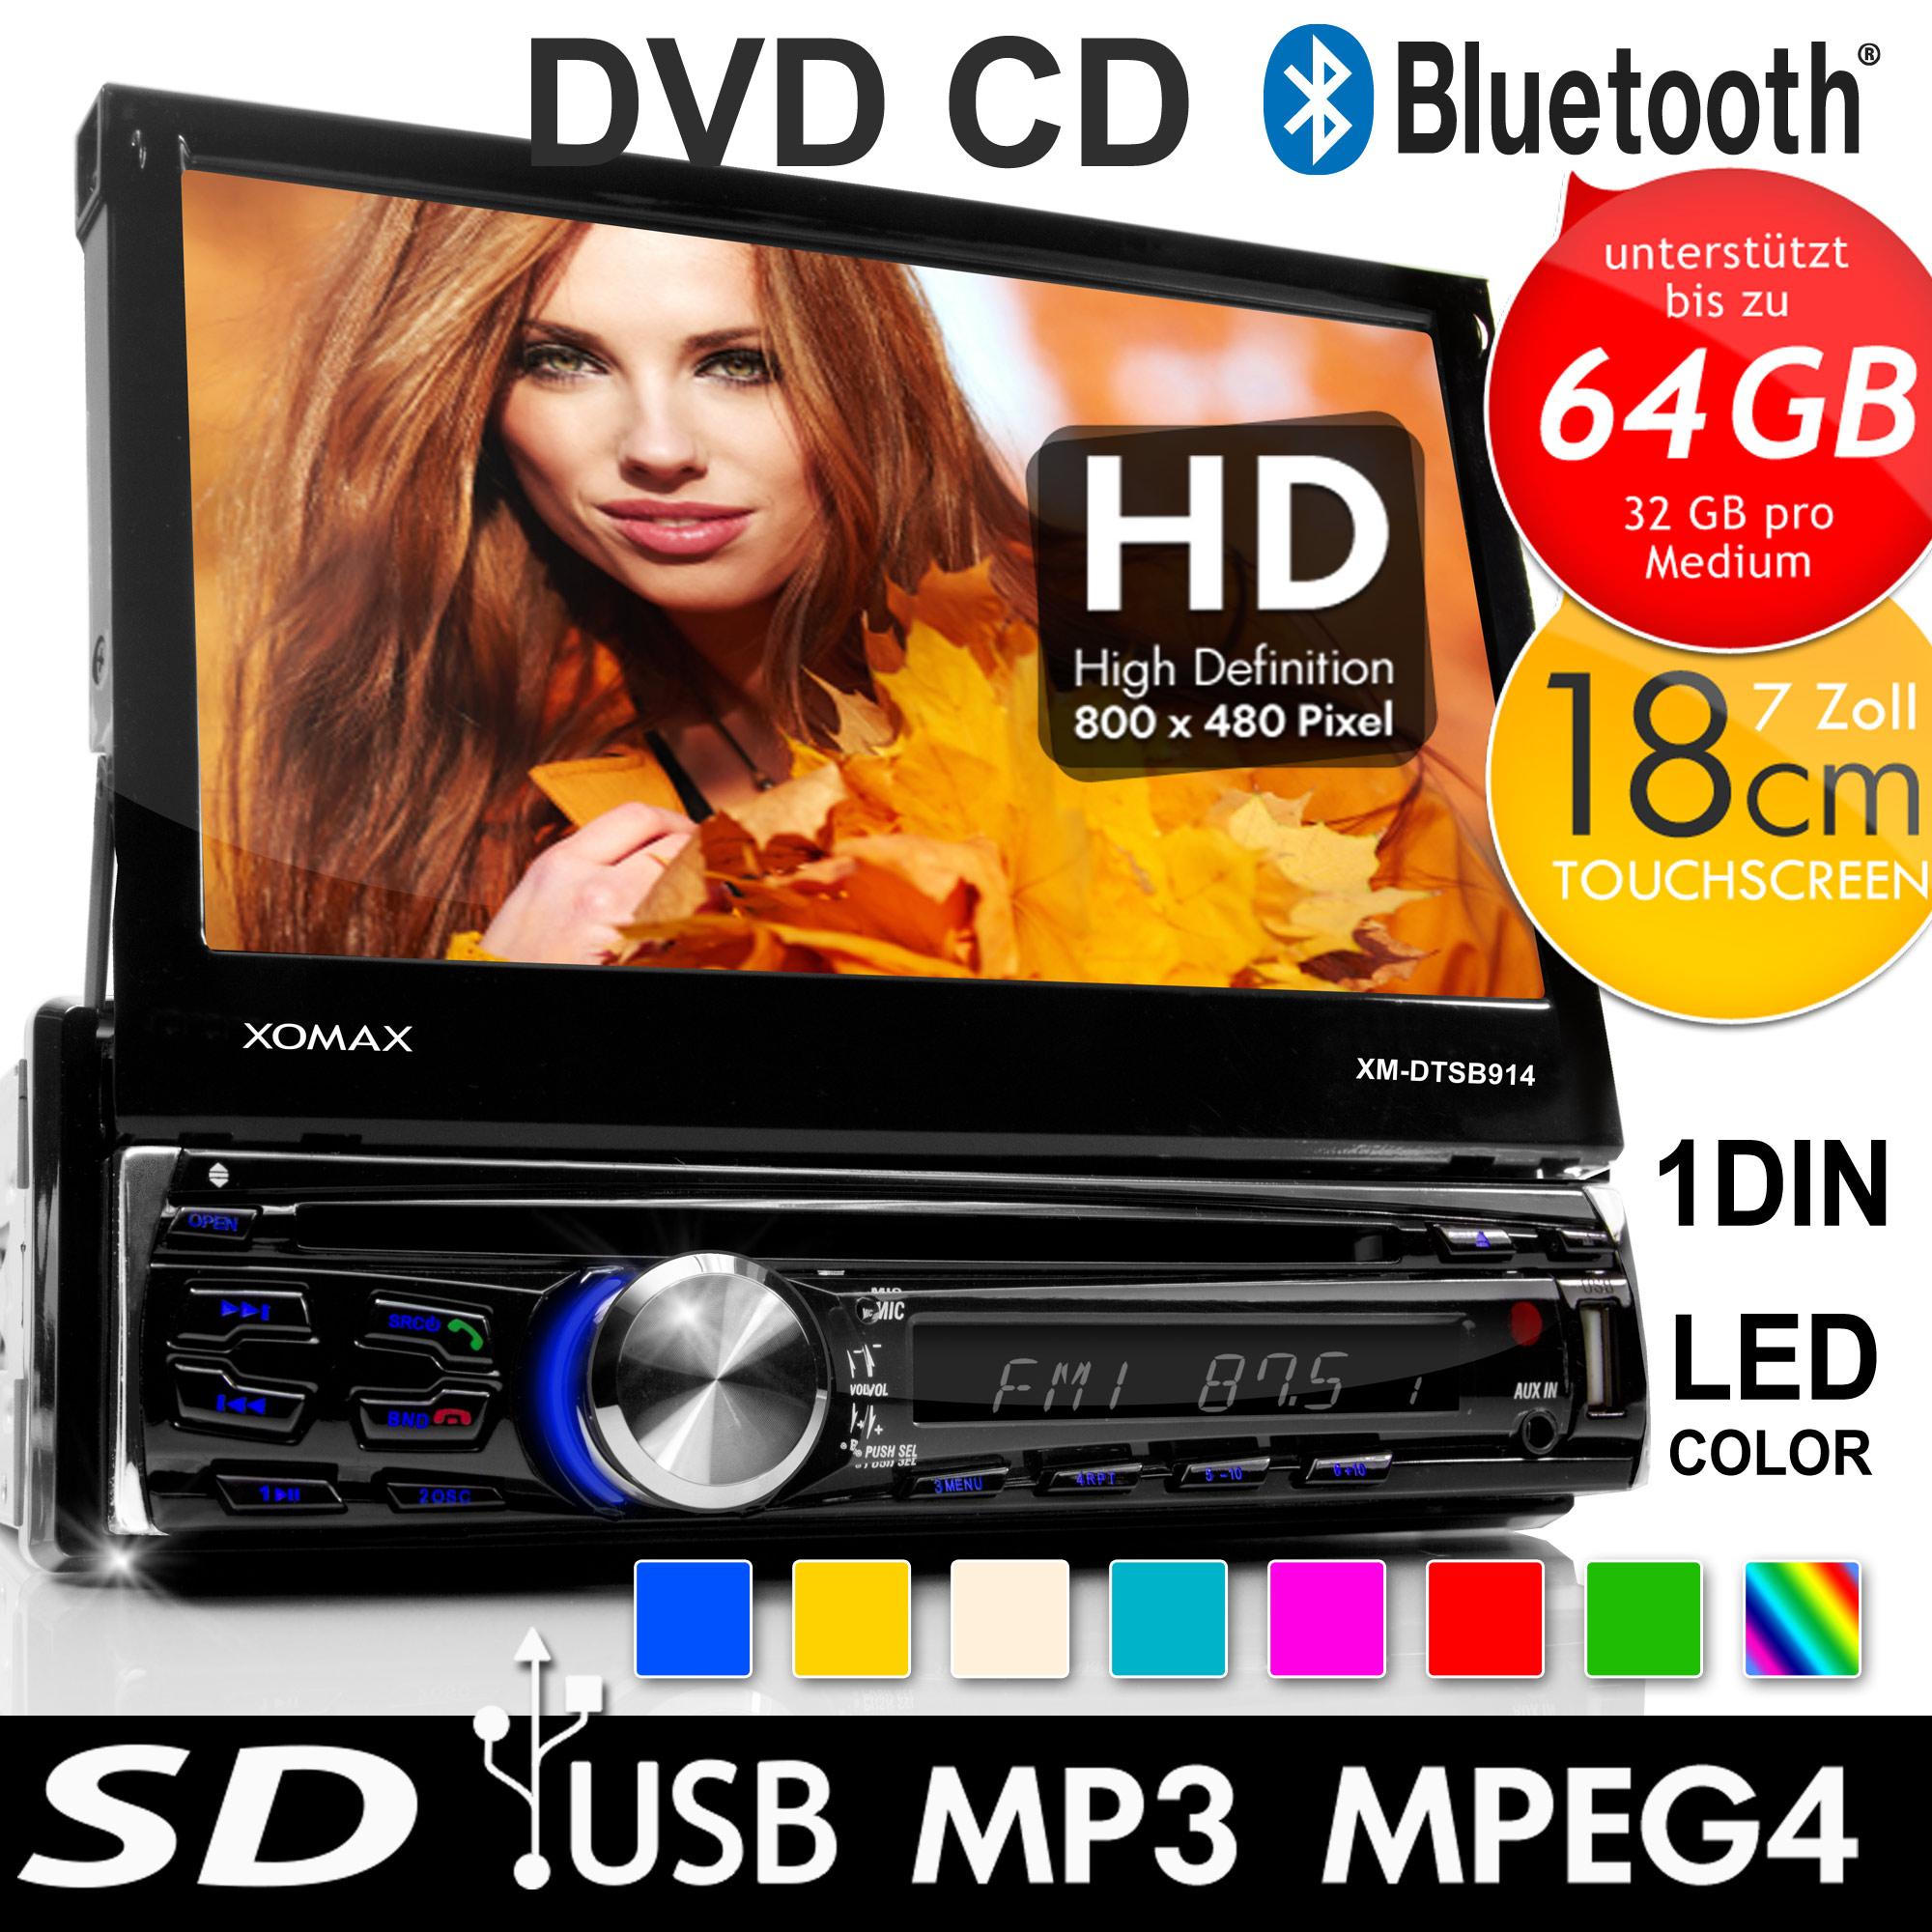 xomax xm dtsb914 autoradio bluetooth 18cm touchscreen dvd. Black Bedroom Furniture Sets. Home Design Ideas